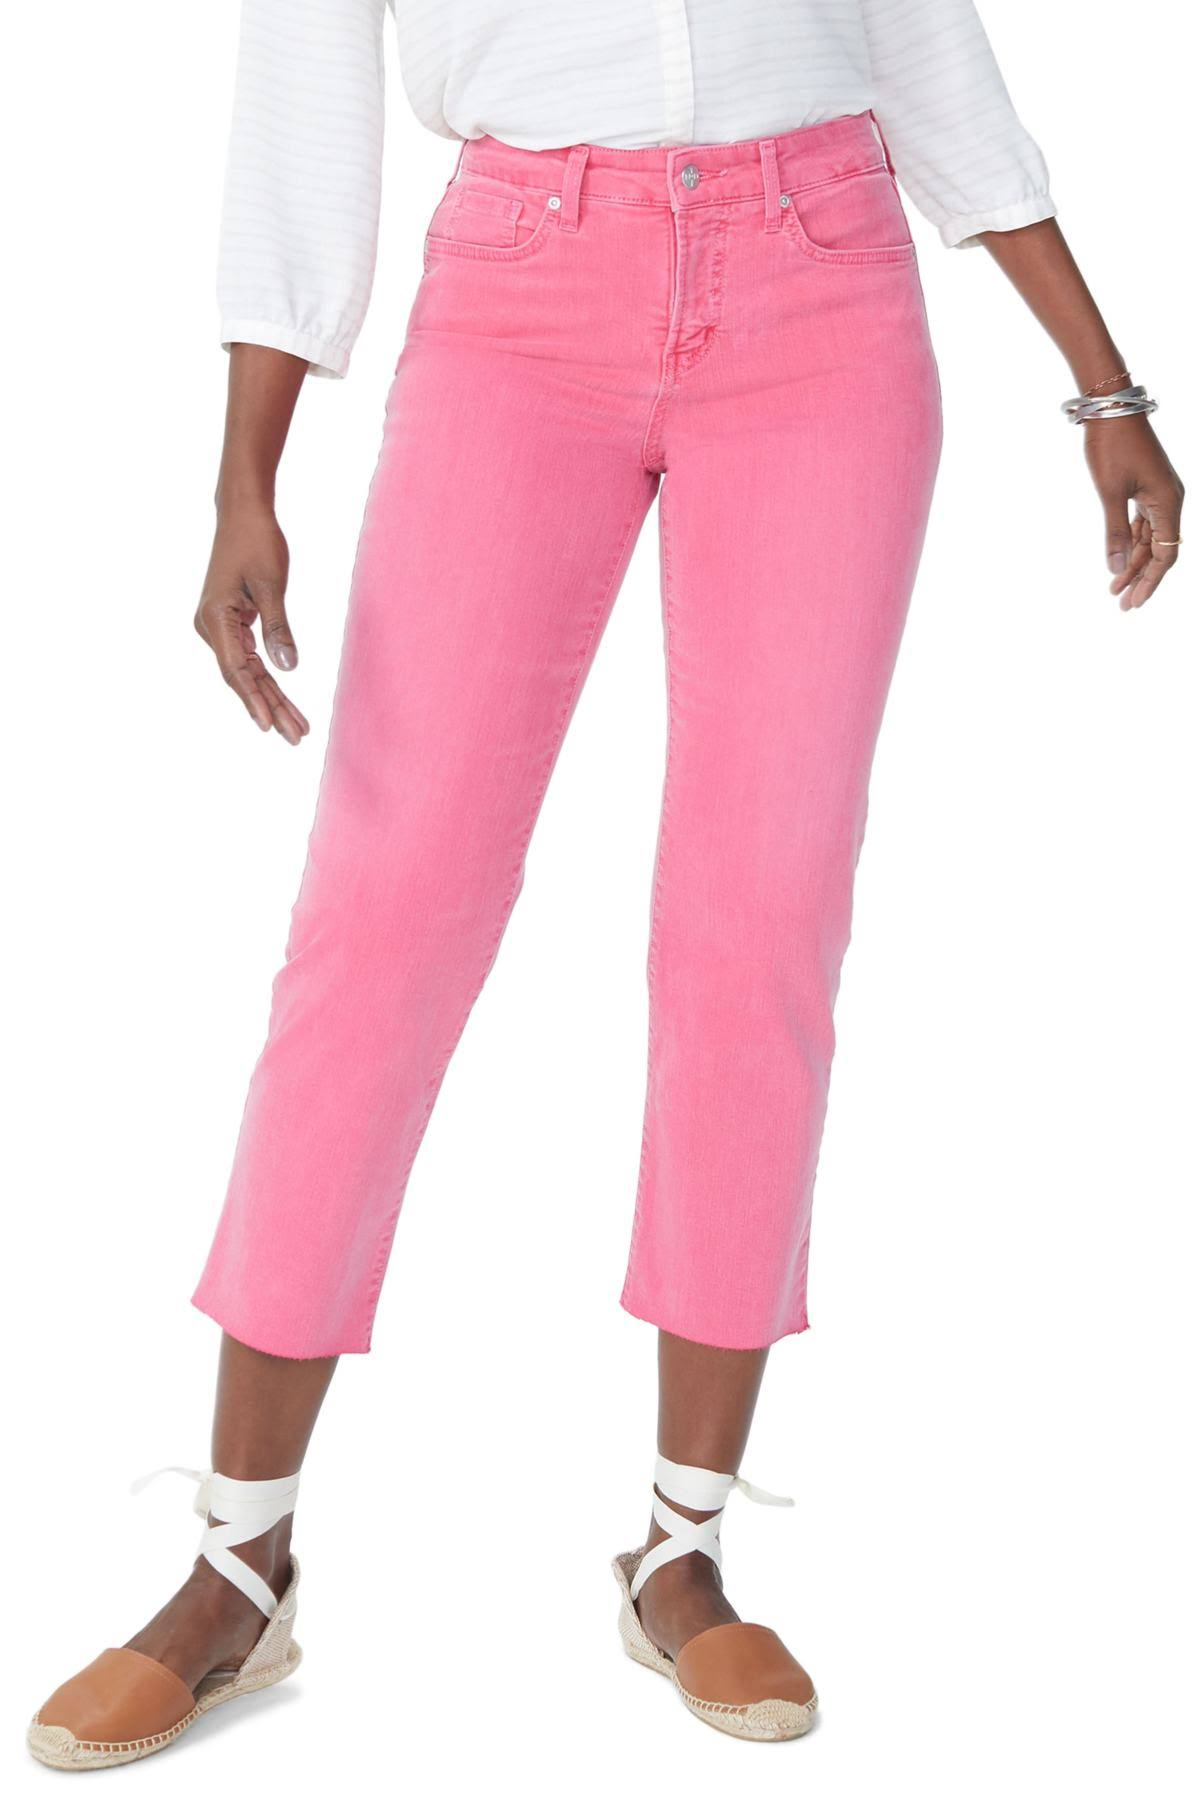 Jeans Jaune Femmes Nydj 2 Rose Straight Jenna Ankle Taille nIBIqwYPd